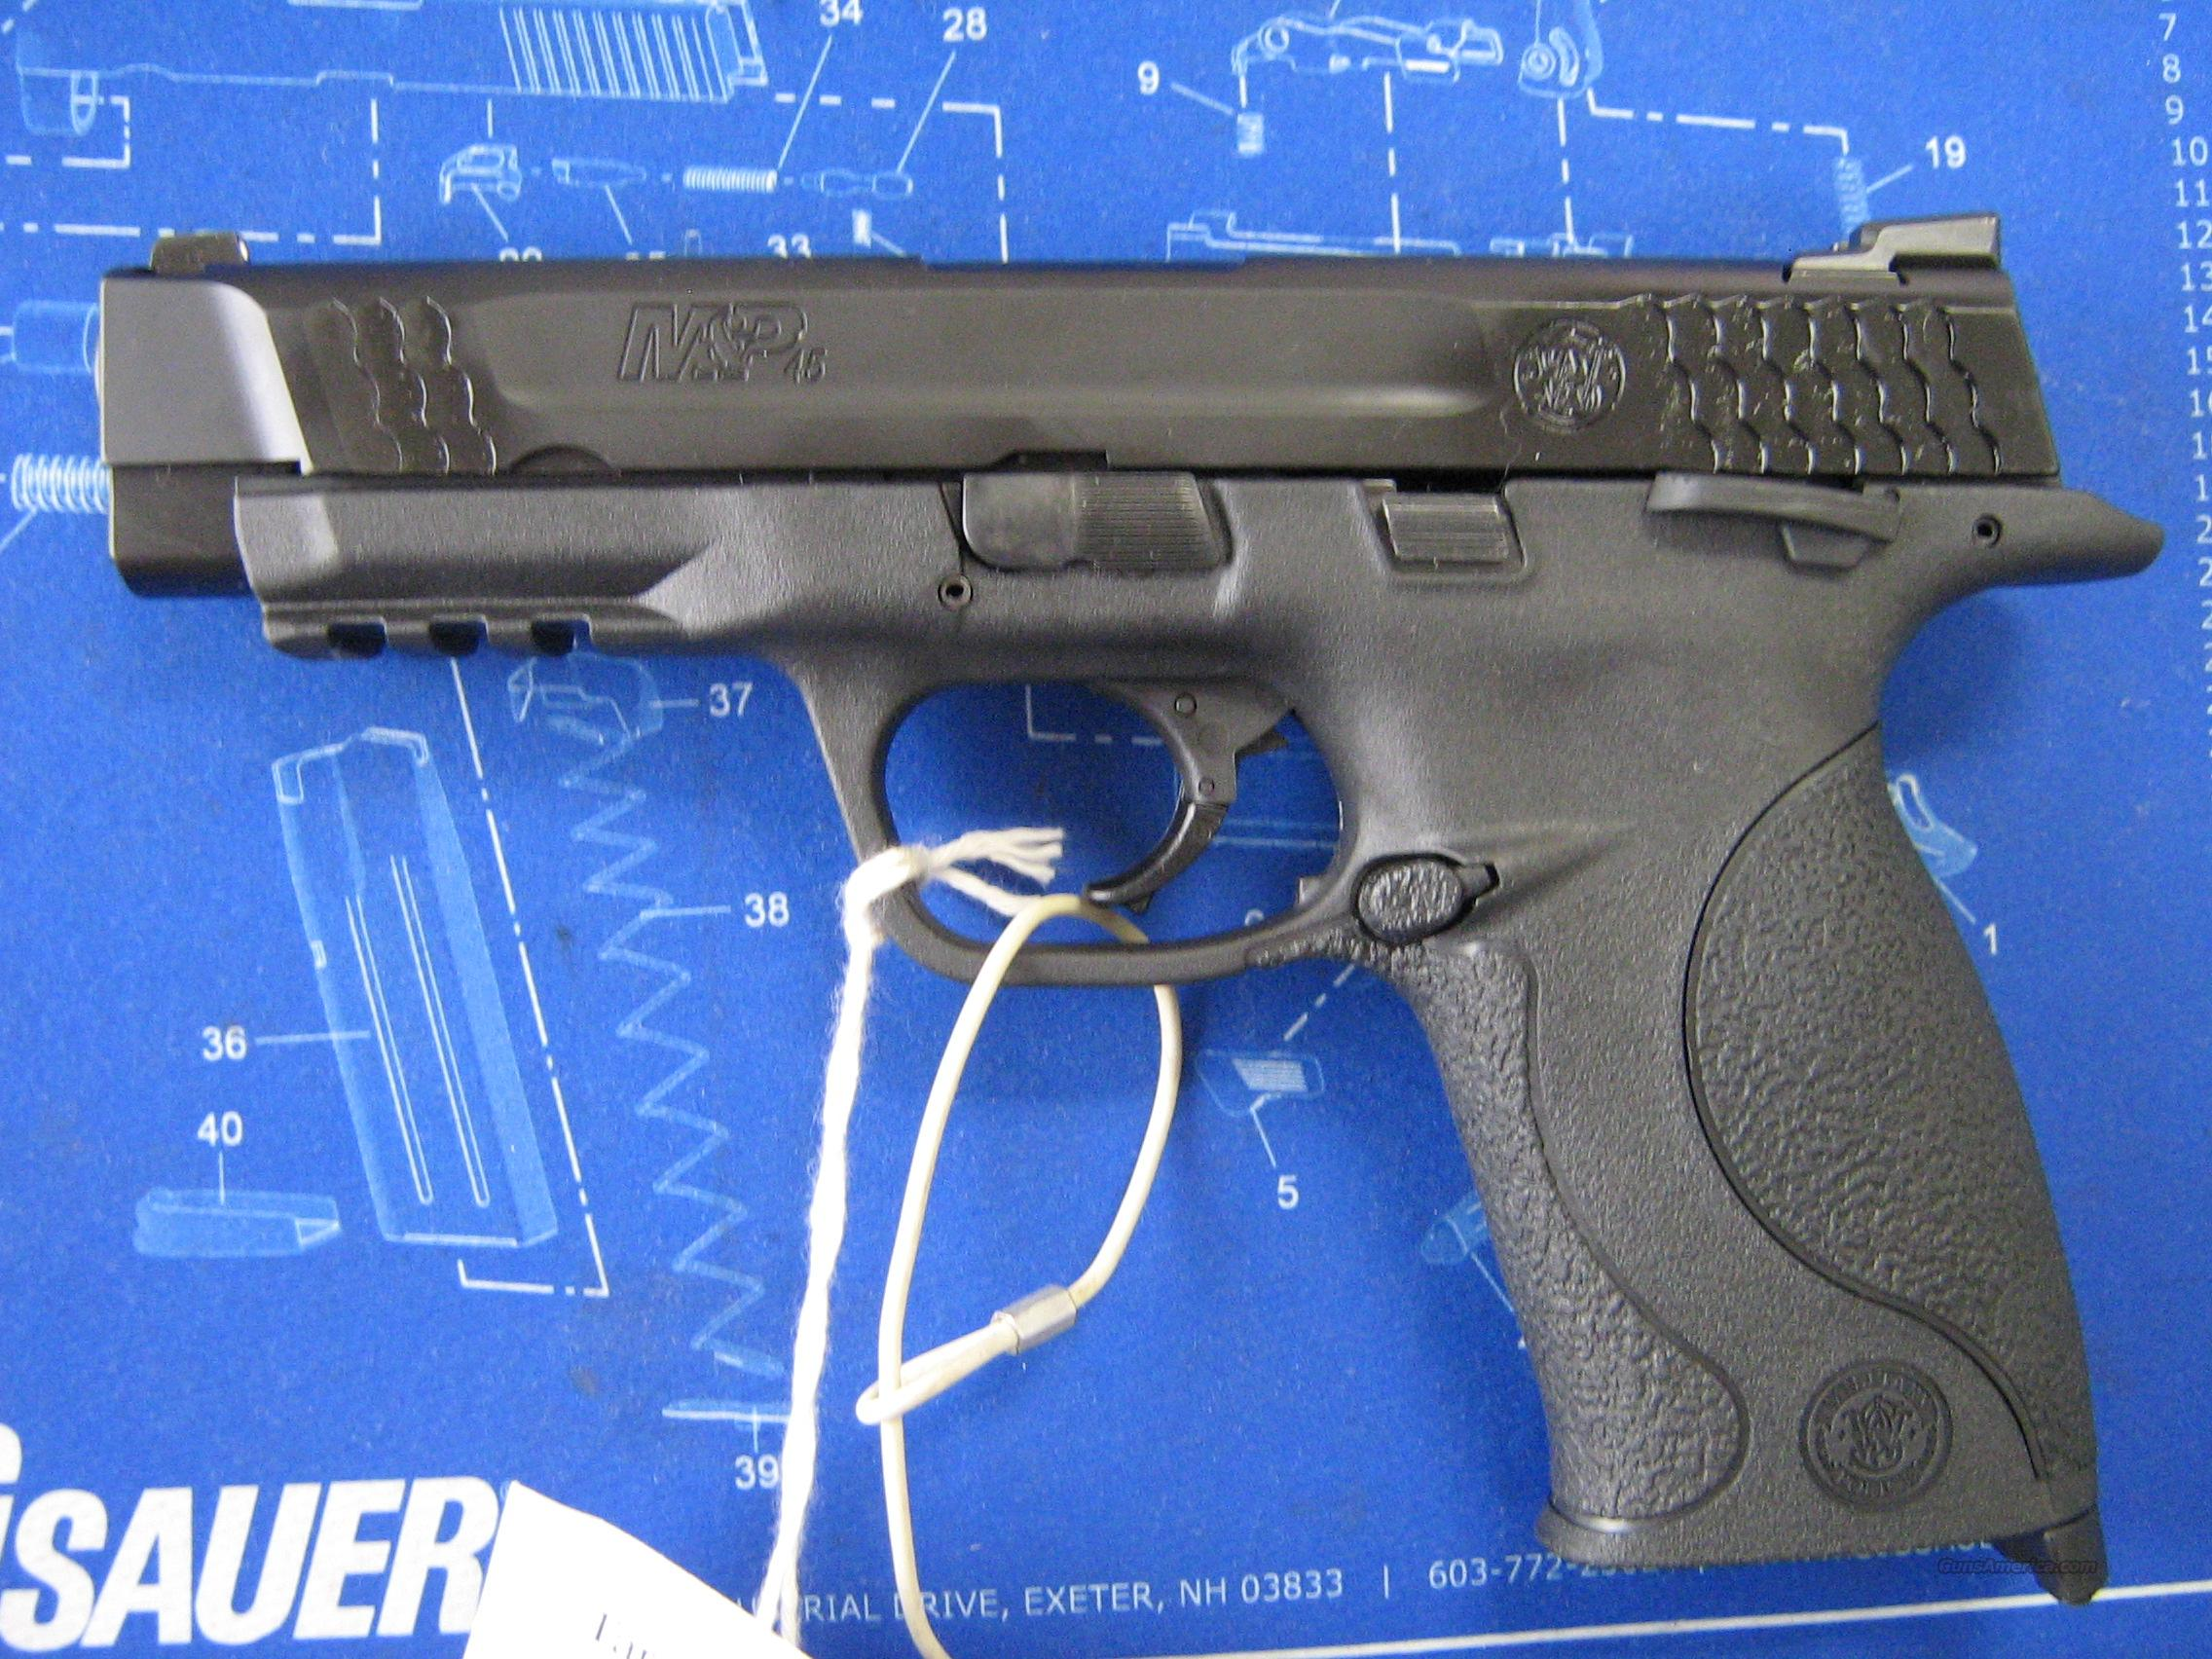 SMITH & WESSON M&P45  Guns > Pistols > Smith & Wesson Pistols - Autos > Polymer Frame